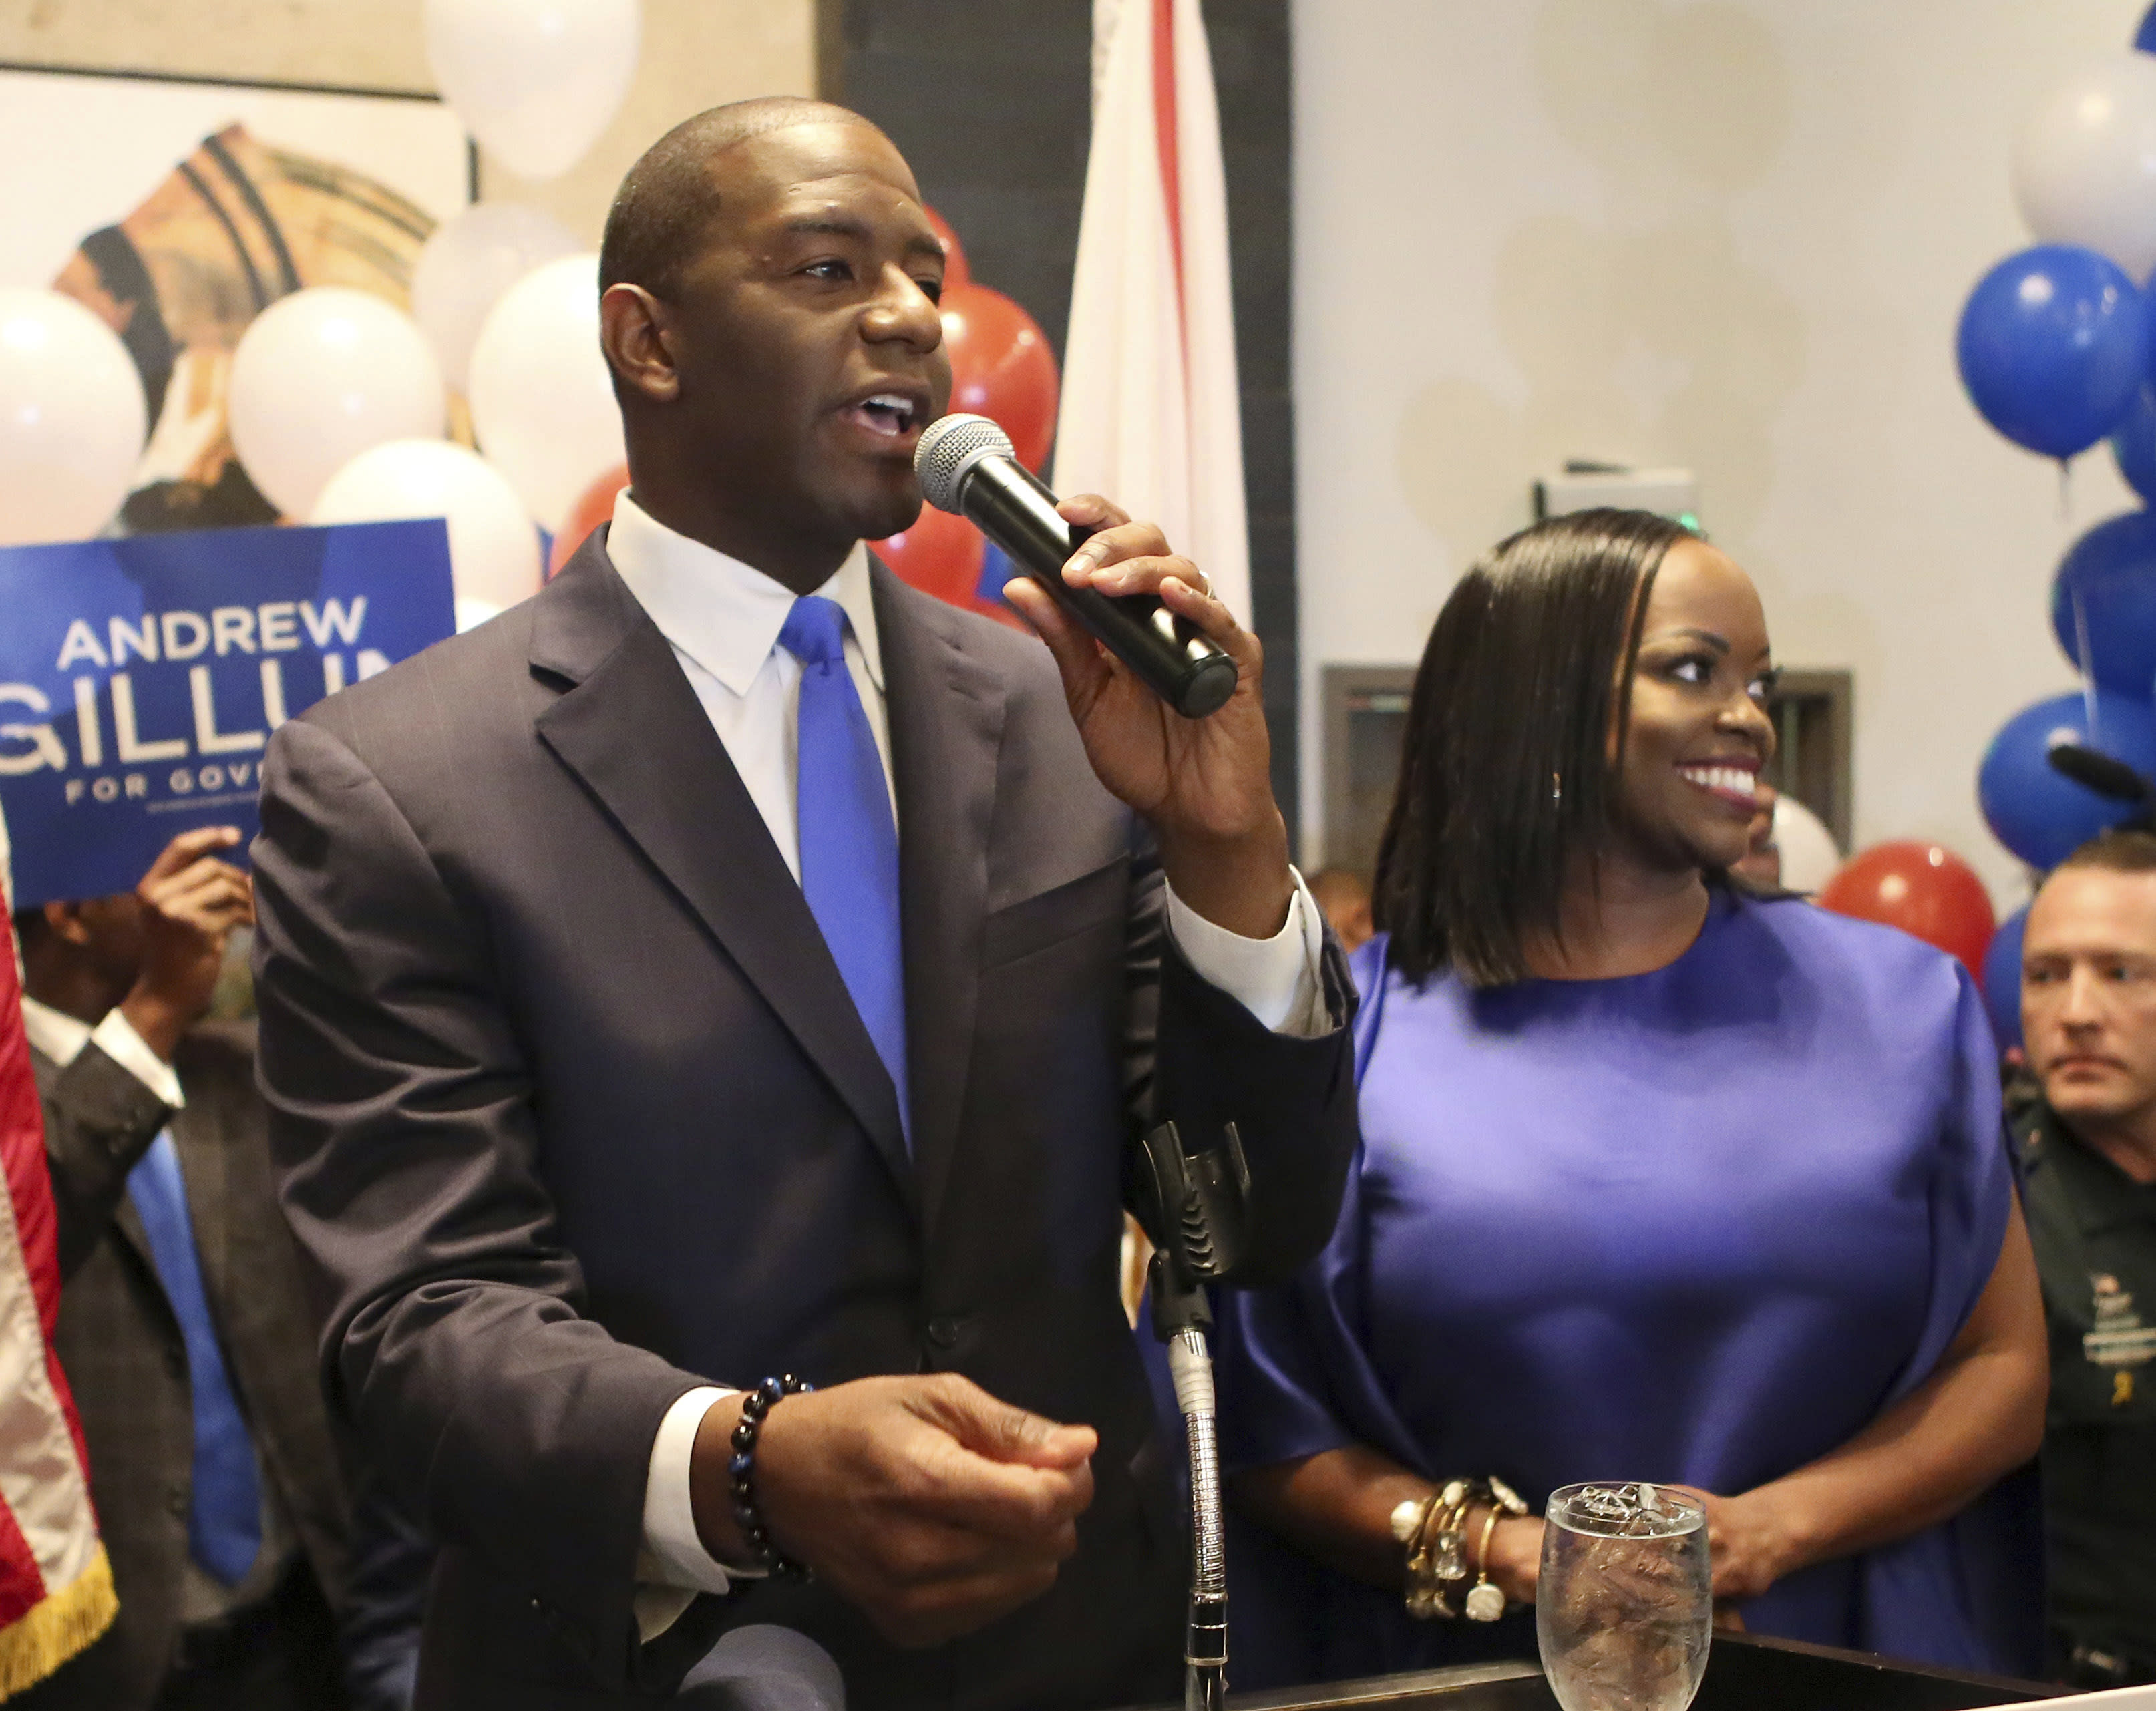 FILE - In this Tuesday, Aug. 28, 2018 file photo, Andrew Gillum and his wife, R. Jai Gillum addresses his supporters after Andrew Gillum won the Democratic primary for governor in Tallahassee, Fla. The history-making gubernatorial runs by Stacey Abrams of Georgia, Gillum of Florida and Ben Jealous of Maryland are turning them into stars nationwide and at the Congressional Black Caucus annual legislative conference. If elected, Abrams, Jealous and Gillum, would give America its largest number of black governors ever. (AP Photo/Steve Cannon, File)